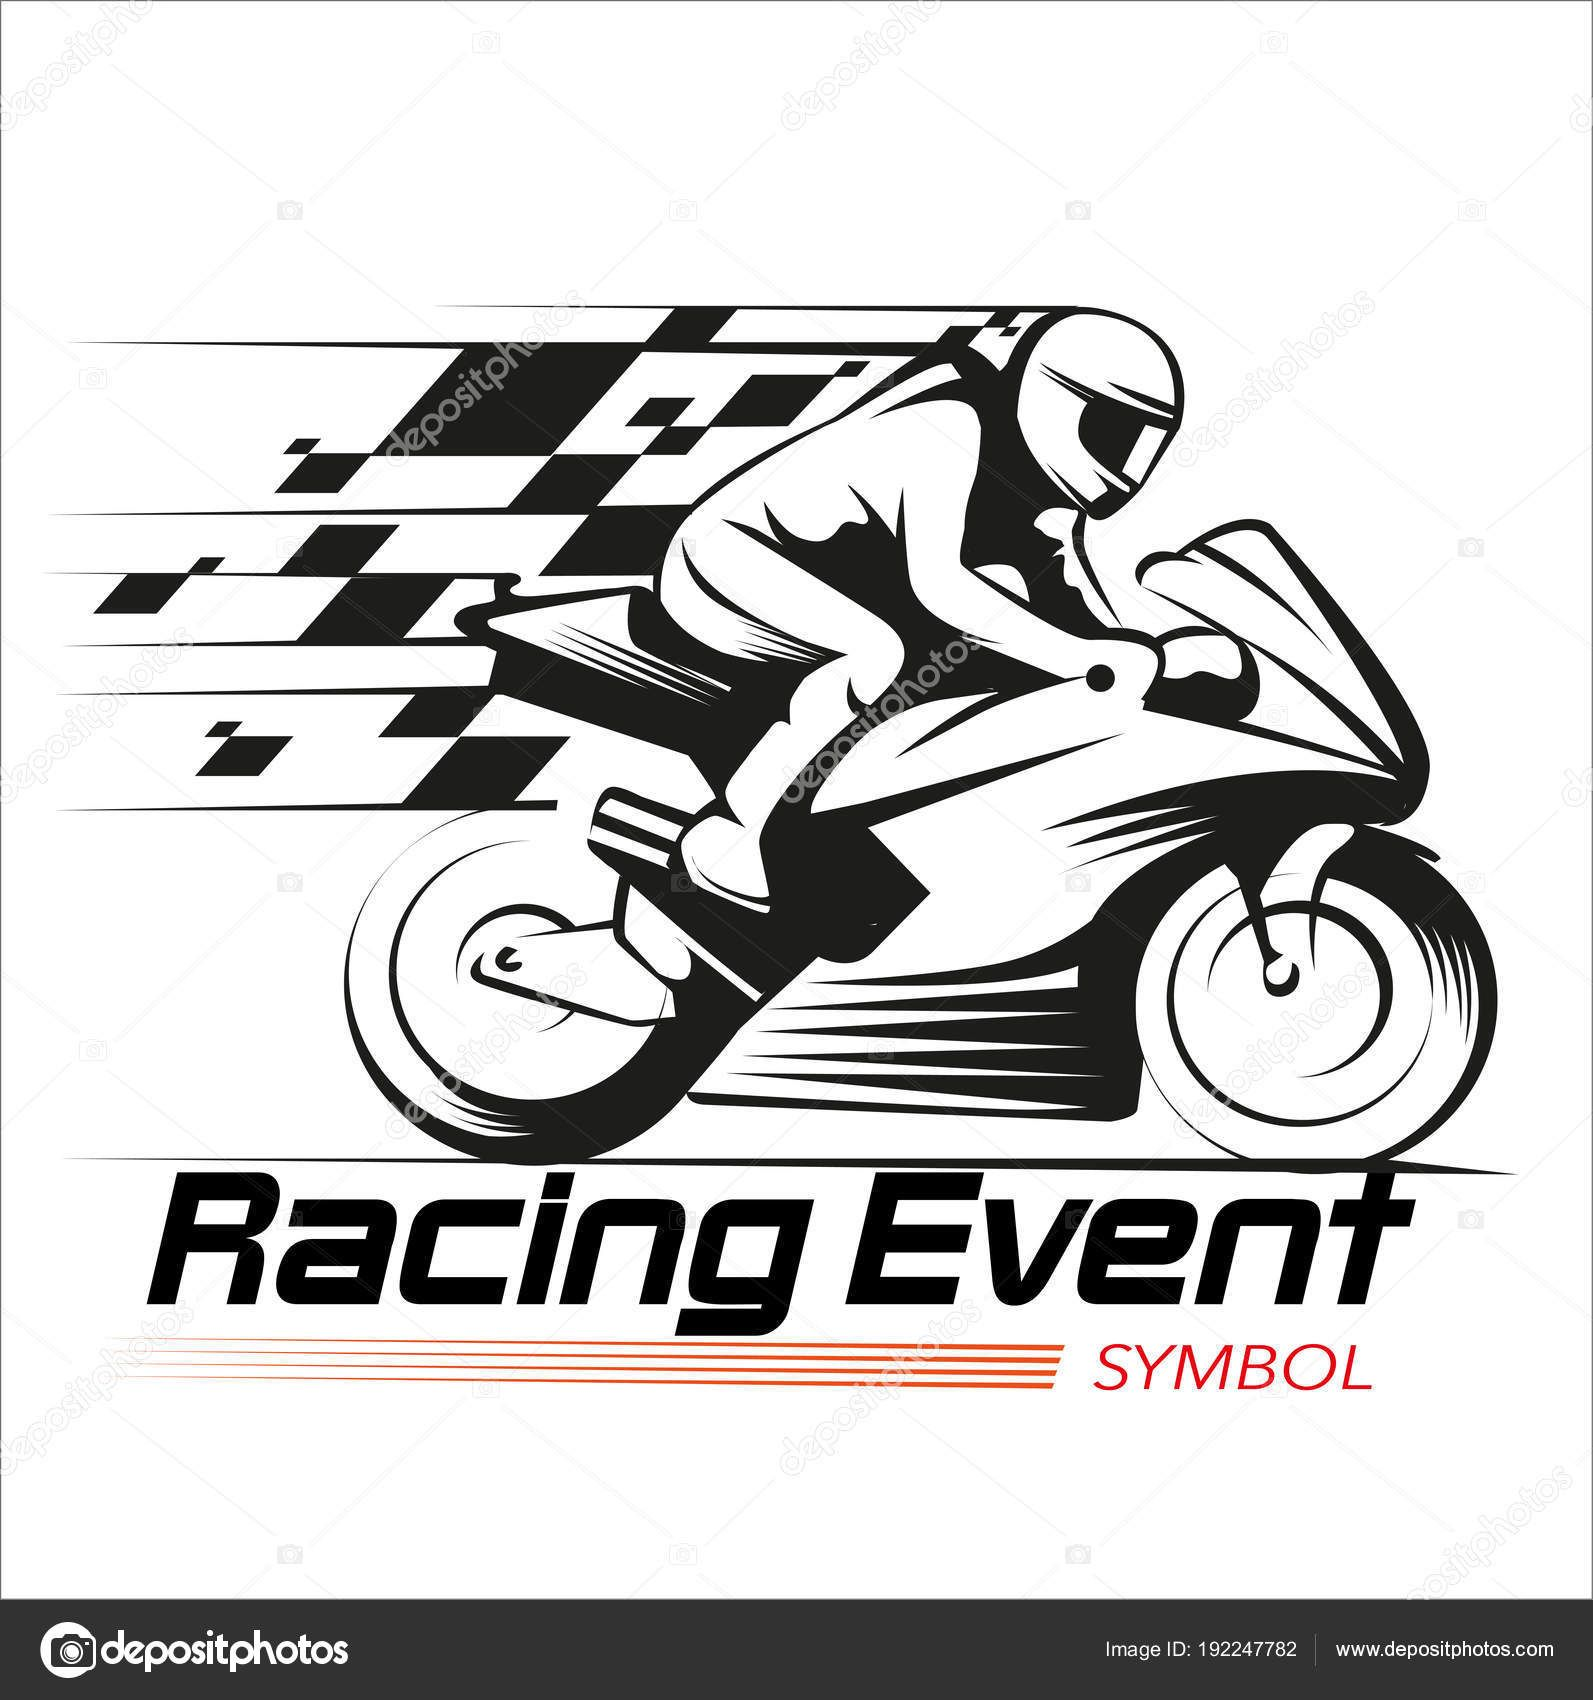 Download Vector Illustration Motorcycle Racing Event Symbol